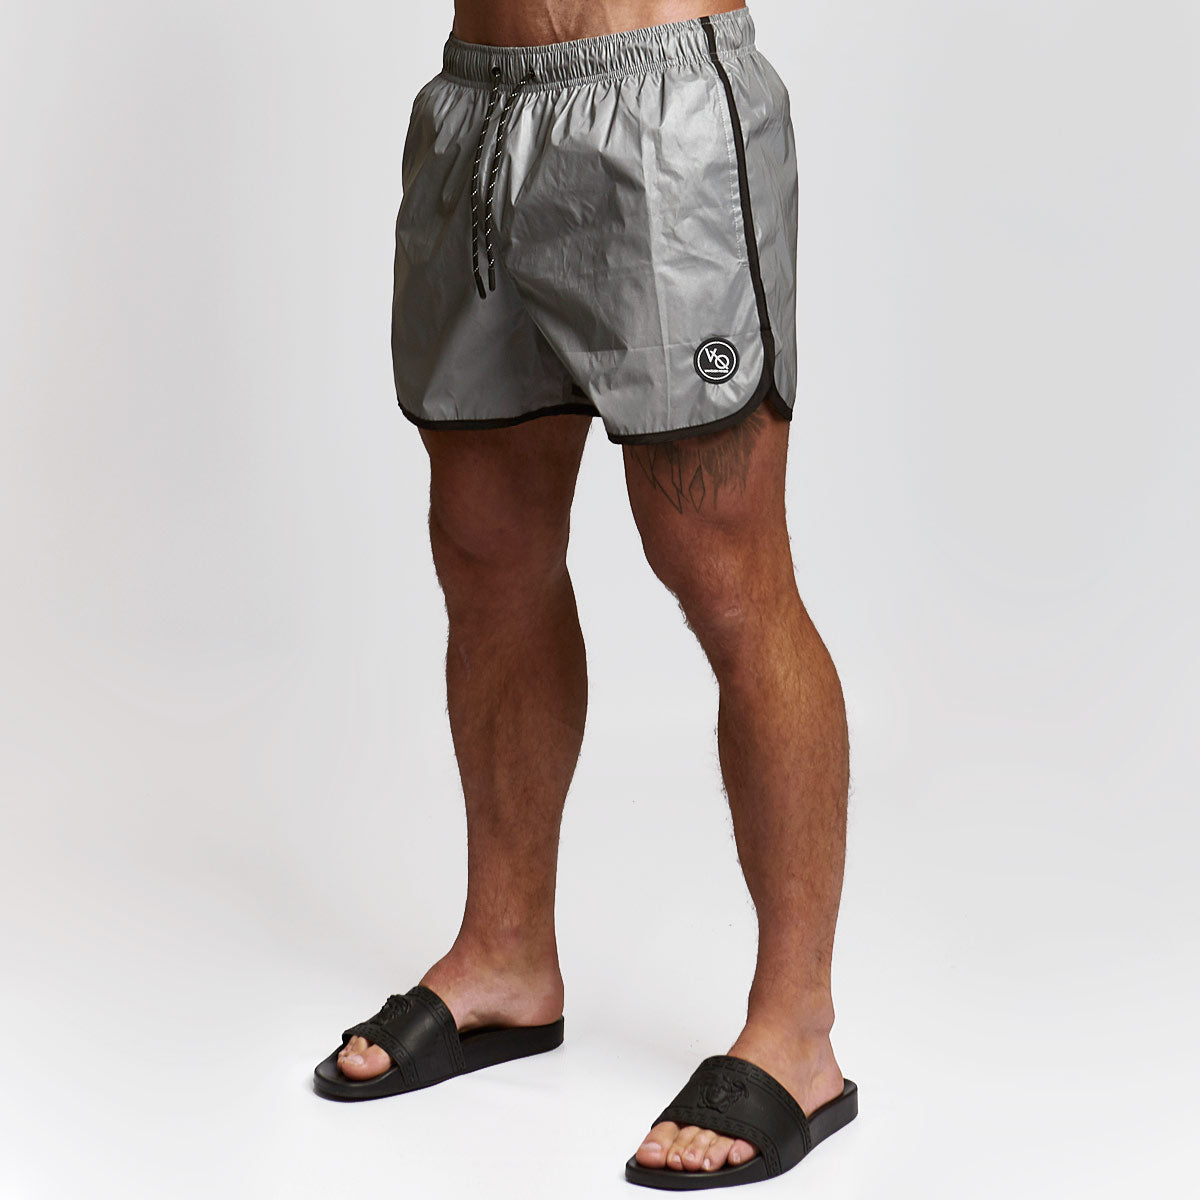 e929ff3d6dad Vanquish Fitness Mens Reflective Athletic Swimming Trunks